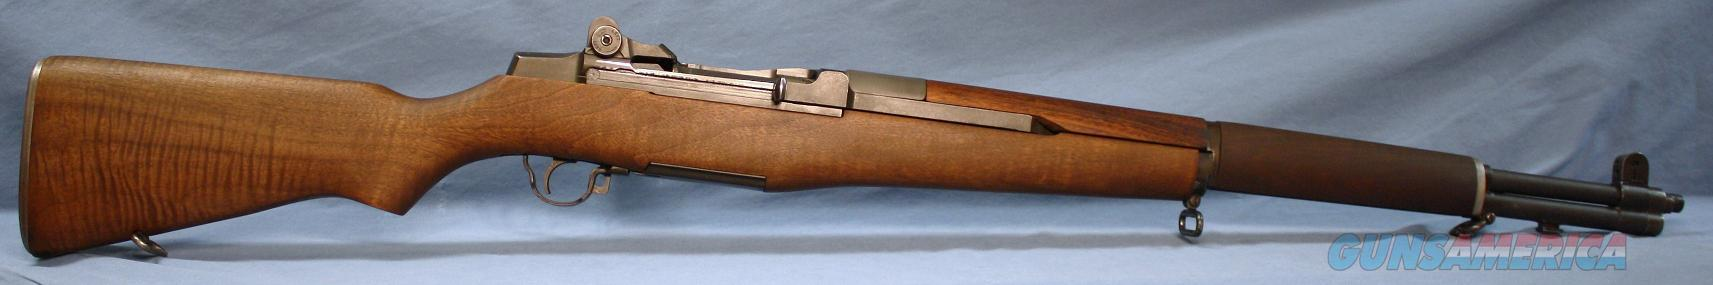 U.S. Army M1D Garand Semi-Automatic Rifle .30-06 Sprg  Guns > Rifles > Military Misc. Rifles US > M1 Garand